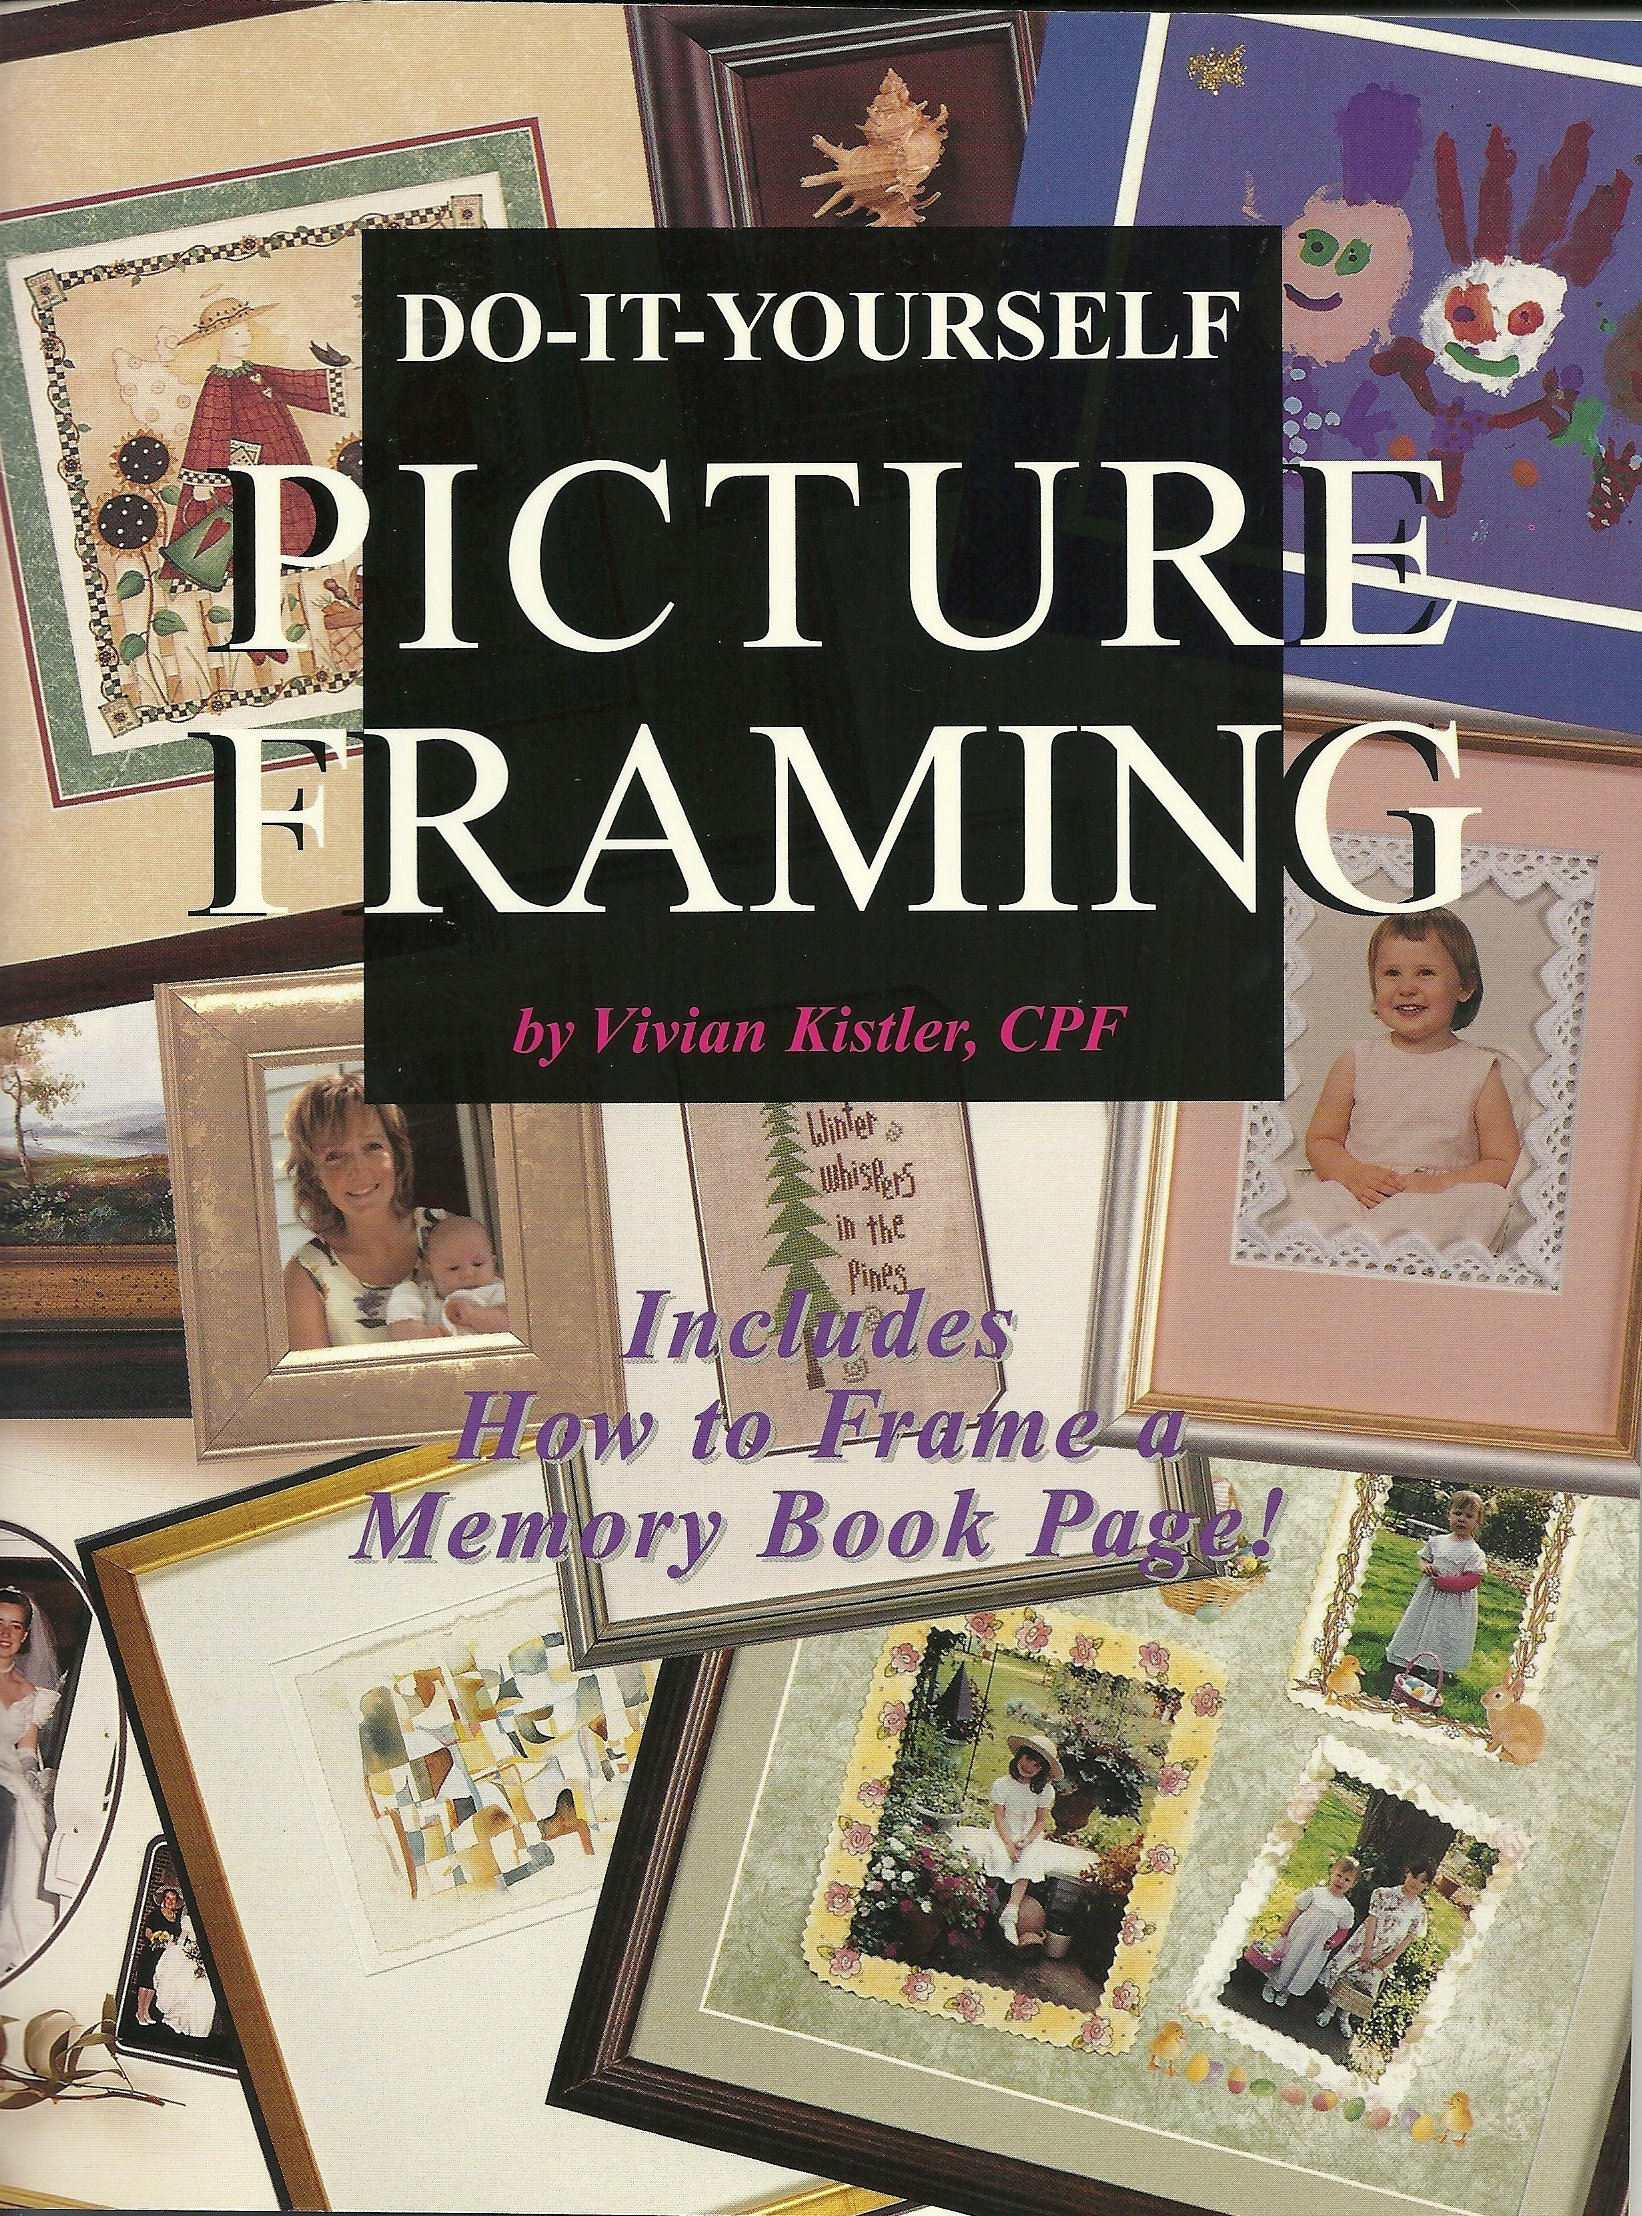 Do-it-yourself: Picture Framing - Includes How to Frame a Memory Book Page!